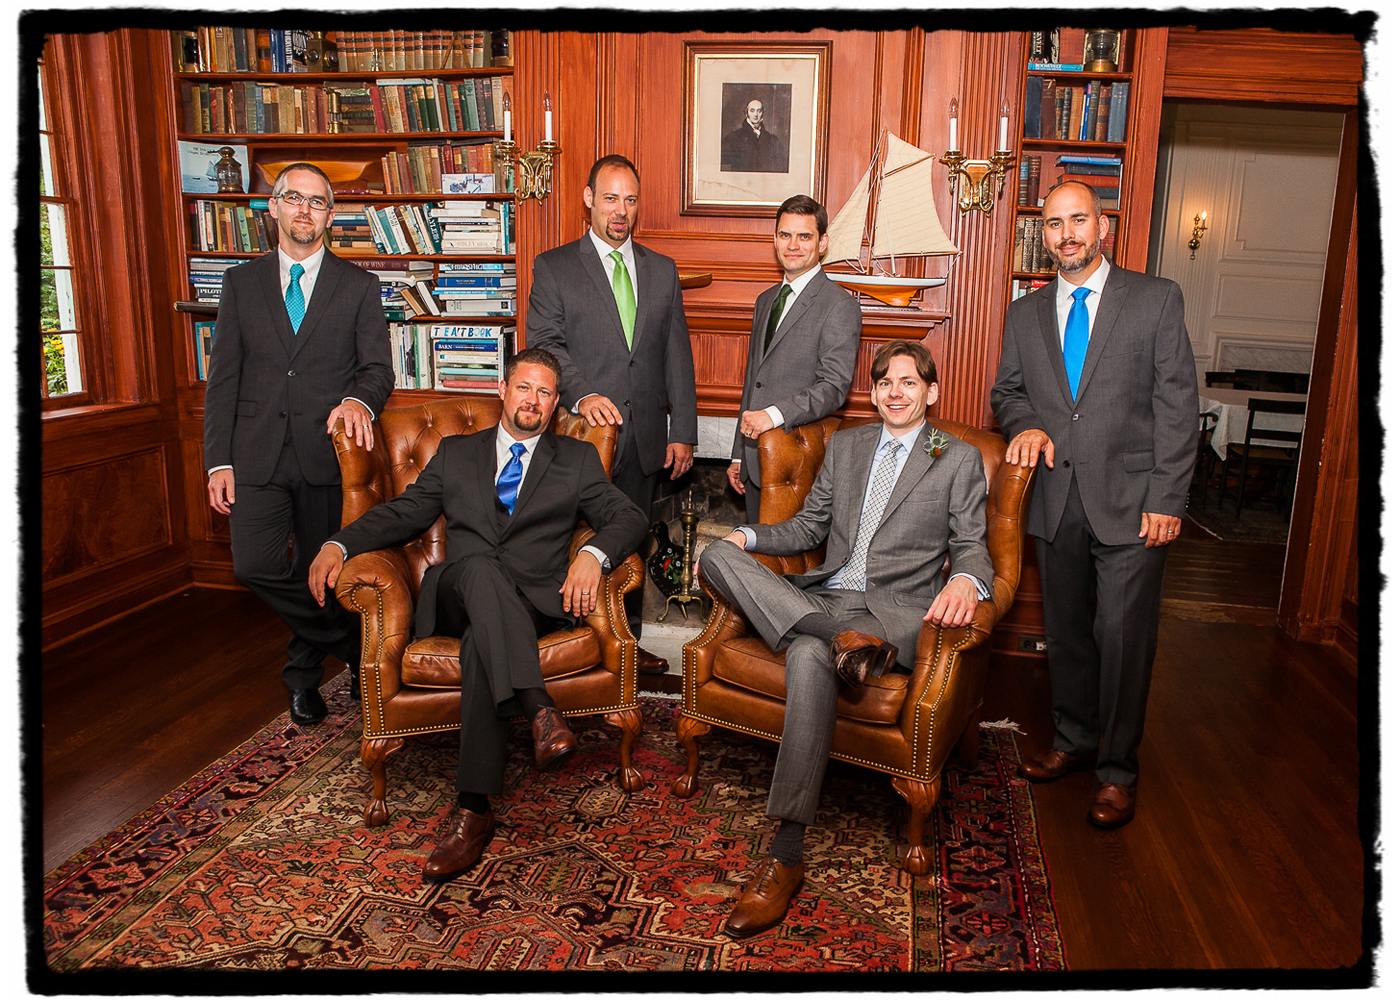 Dano and his groomsmen enjoy the handsome interior at this charming Inn by a lake.